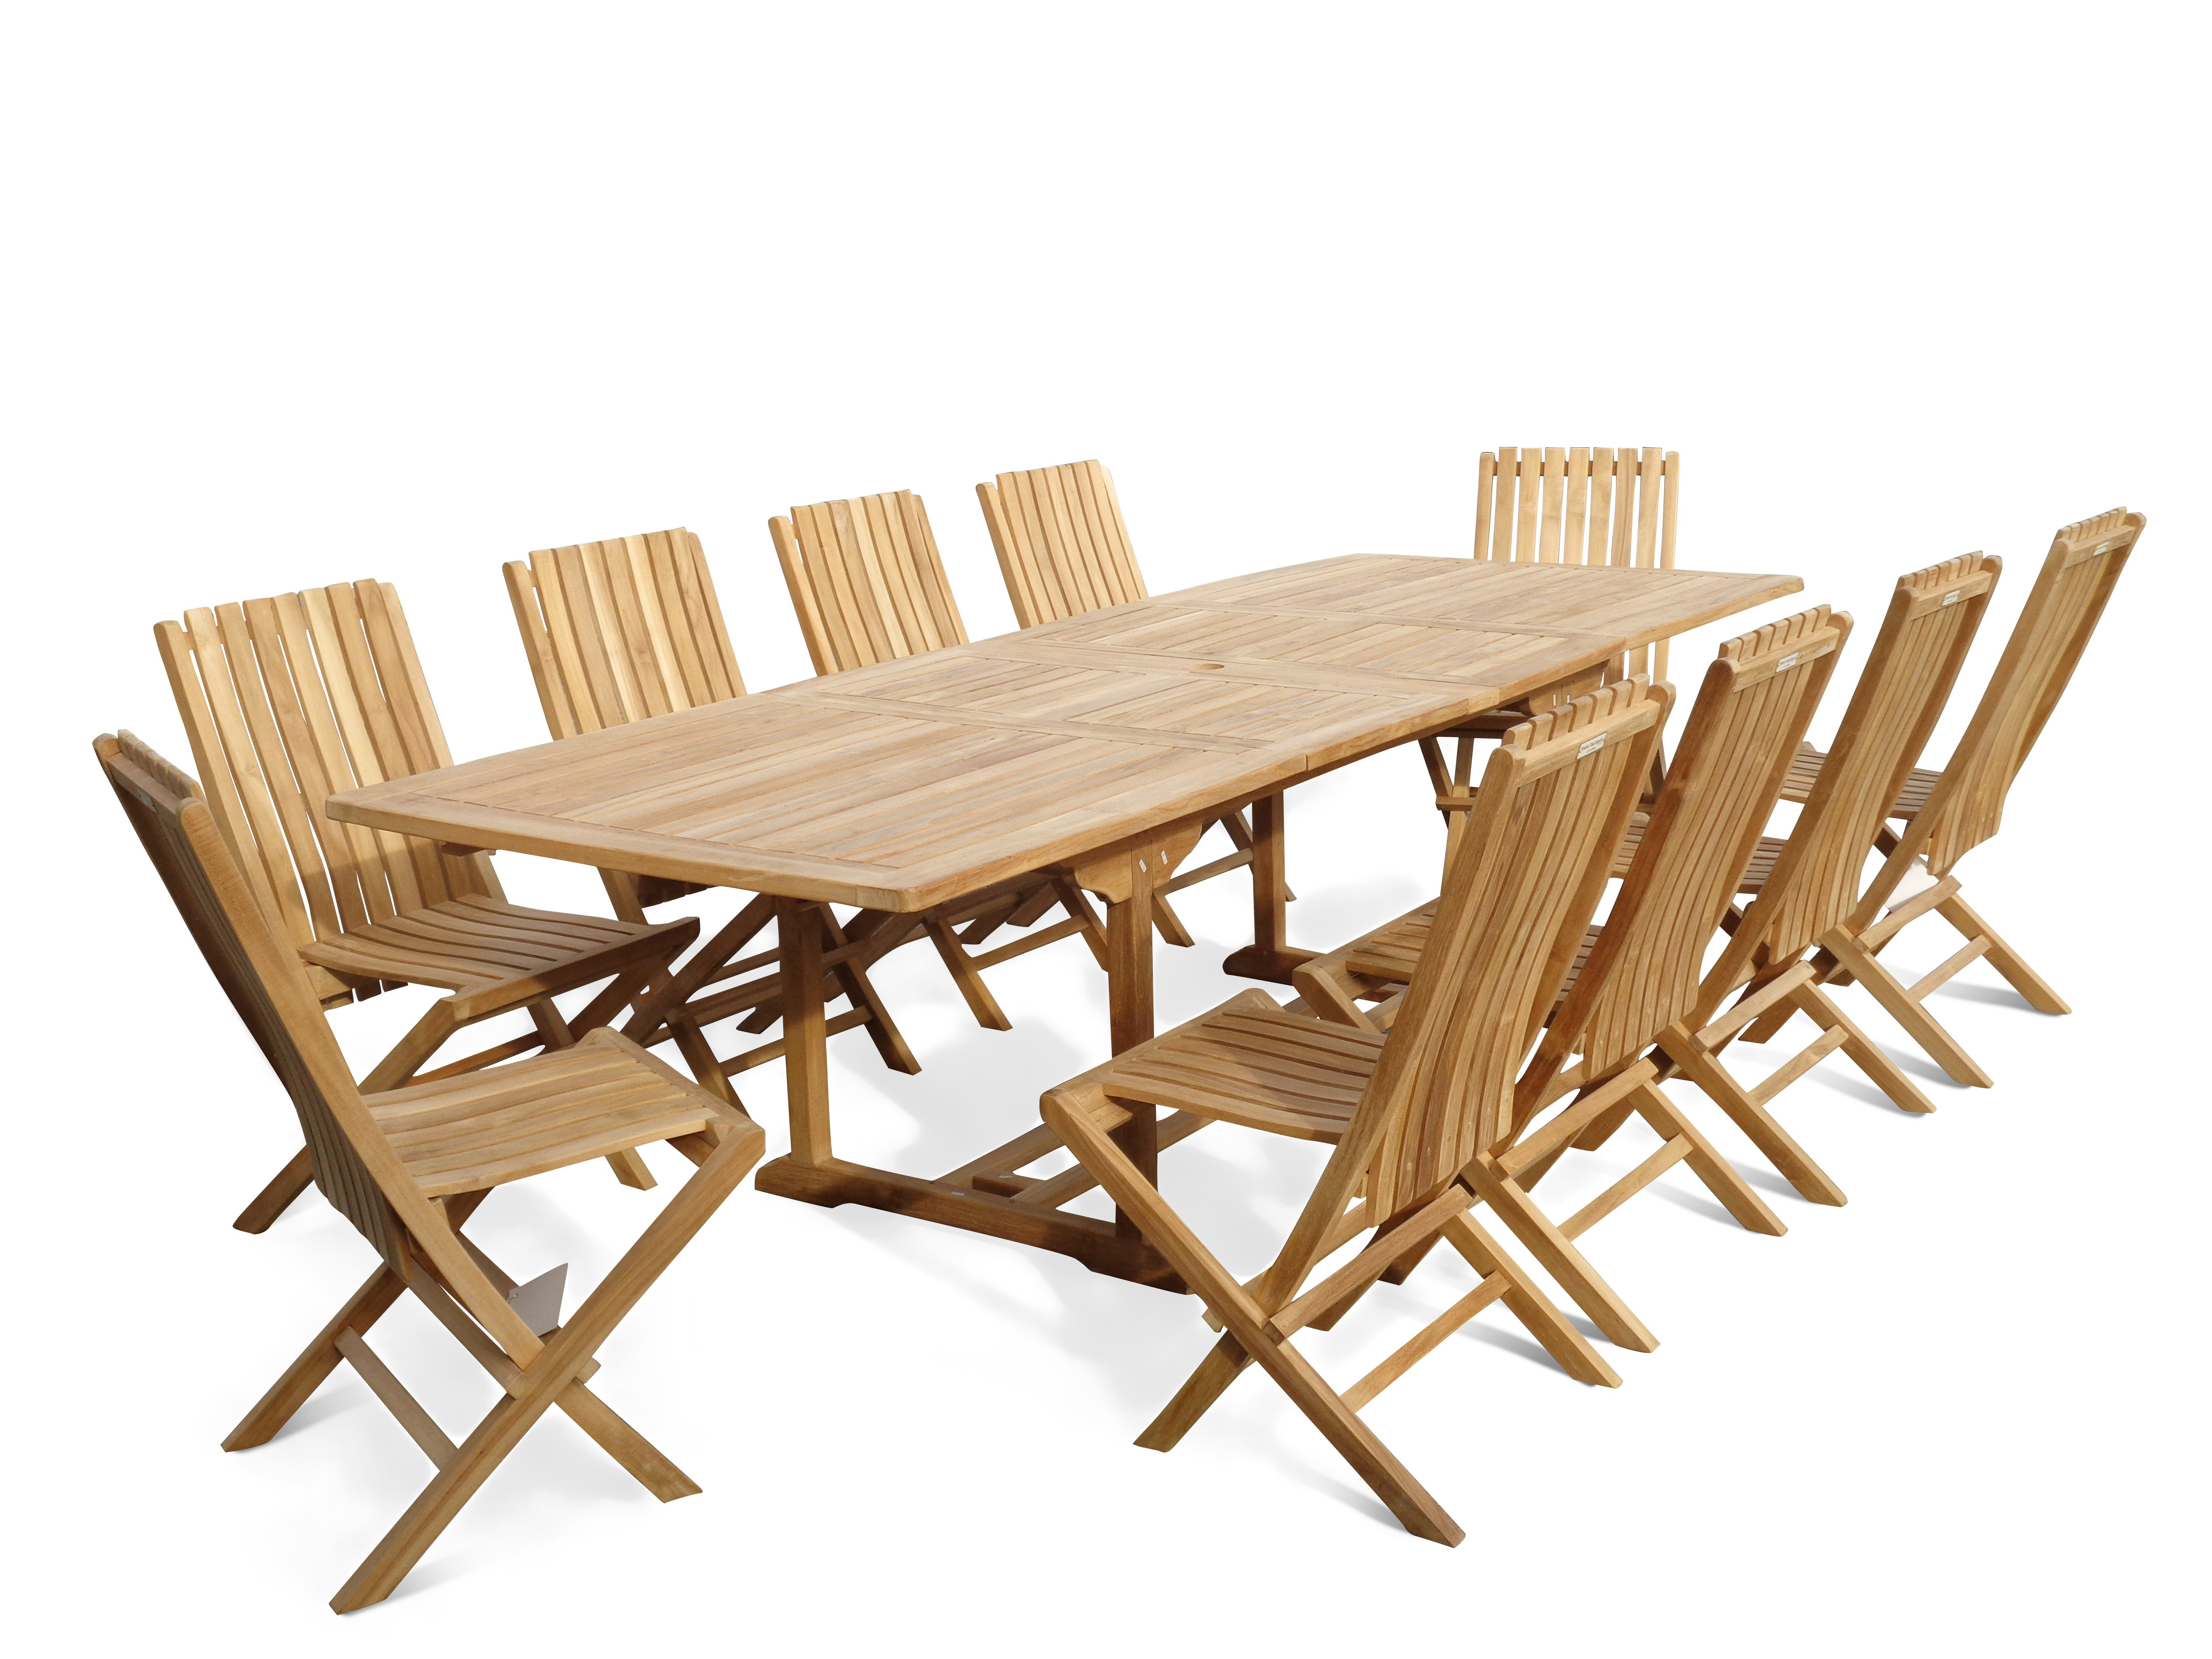 "Buckingham 108"" x 39"" Rectangular Double Leaf Extension Teak Table (9 Foot Long) W/ 10 Java Folding Chairs w Lumbar Support"